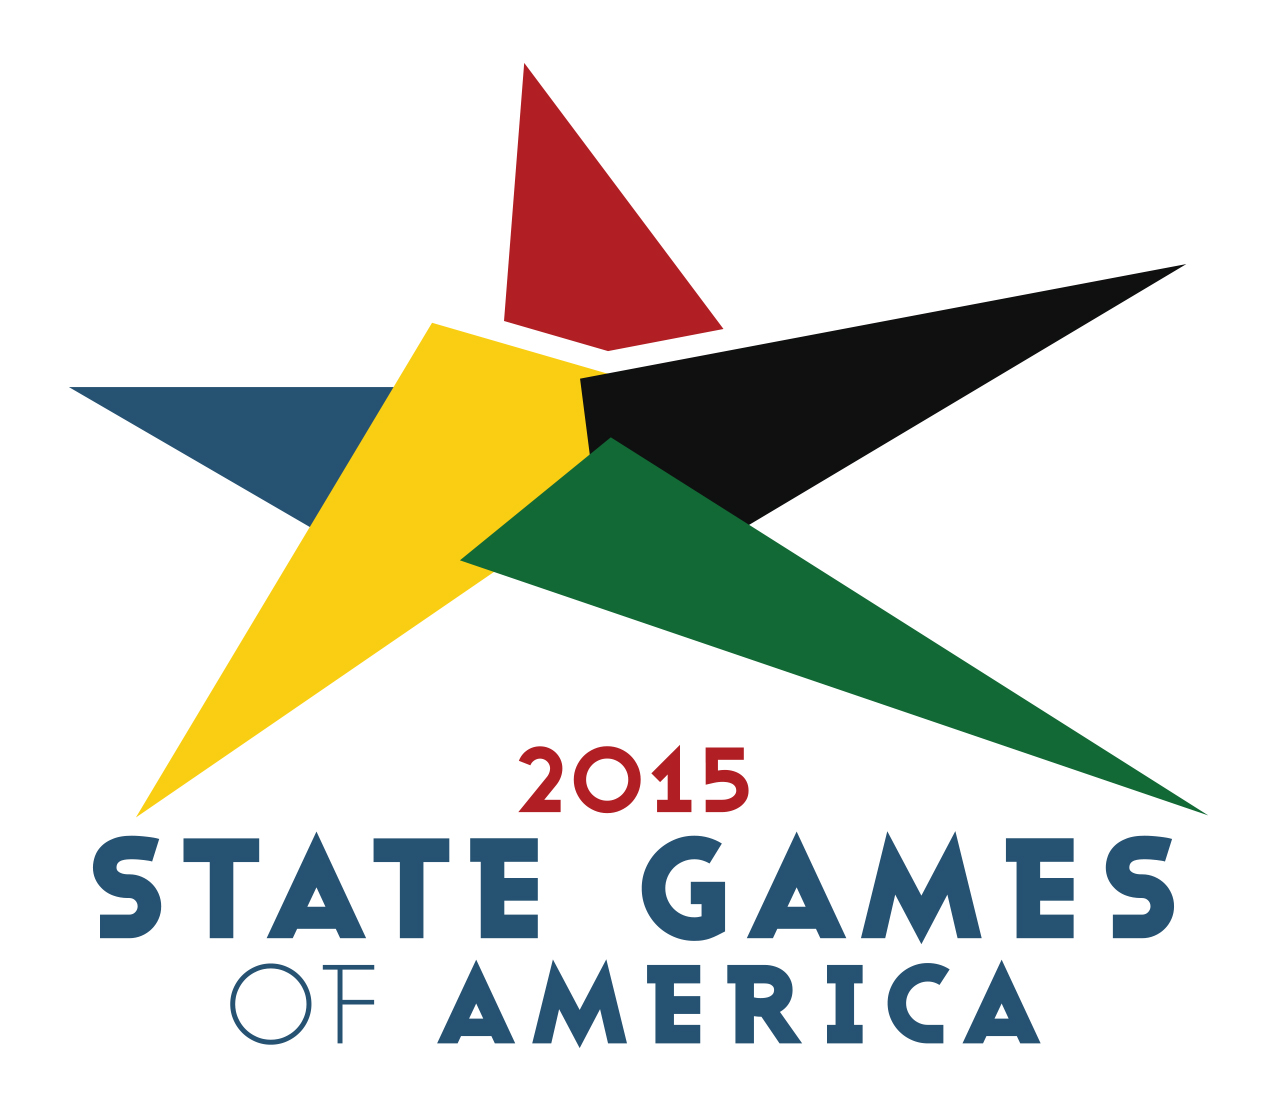 State Games of America 2015 logo